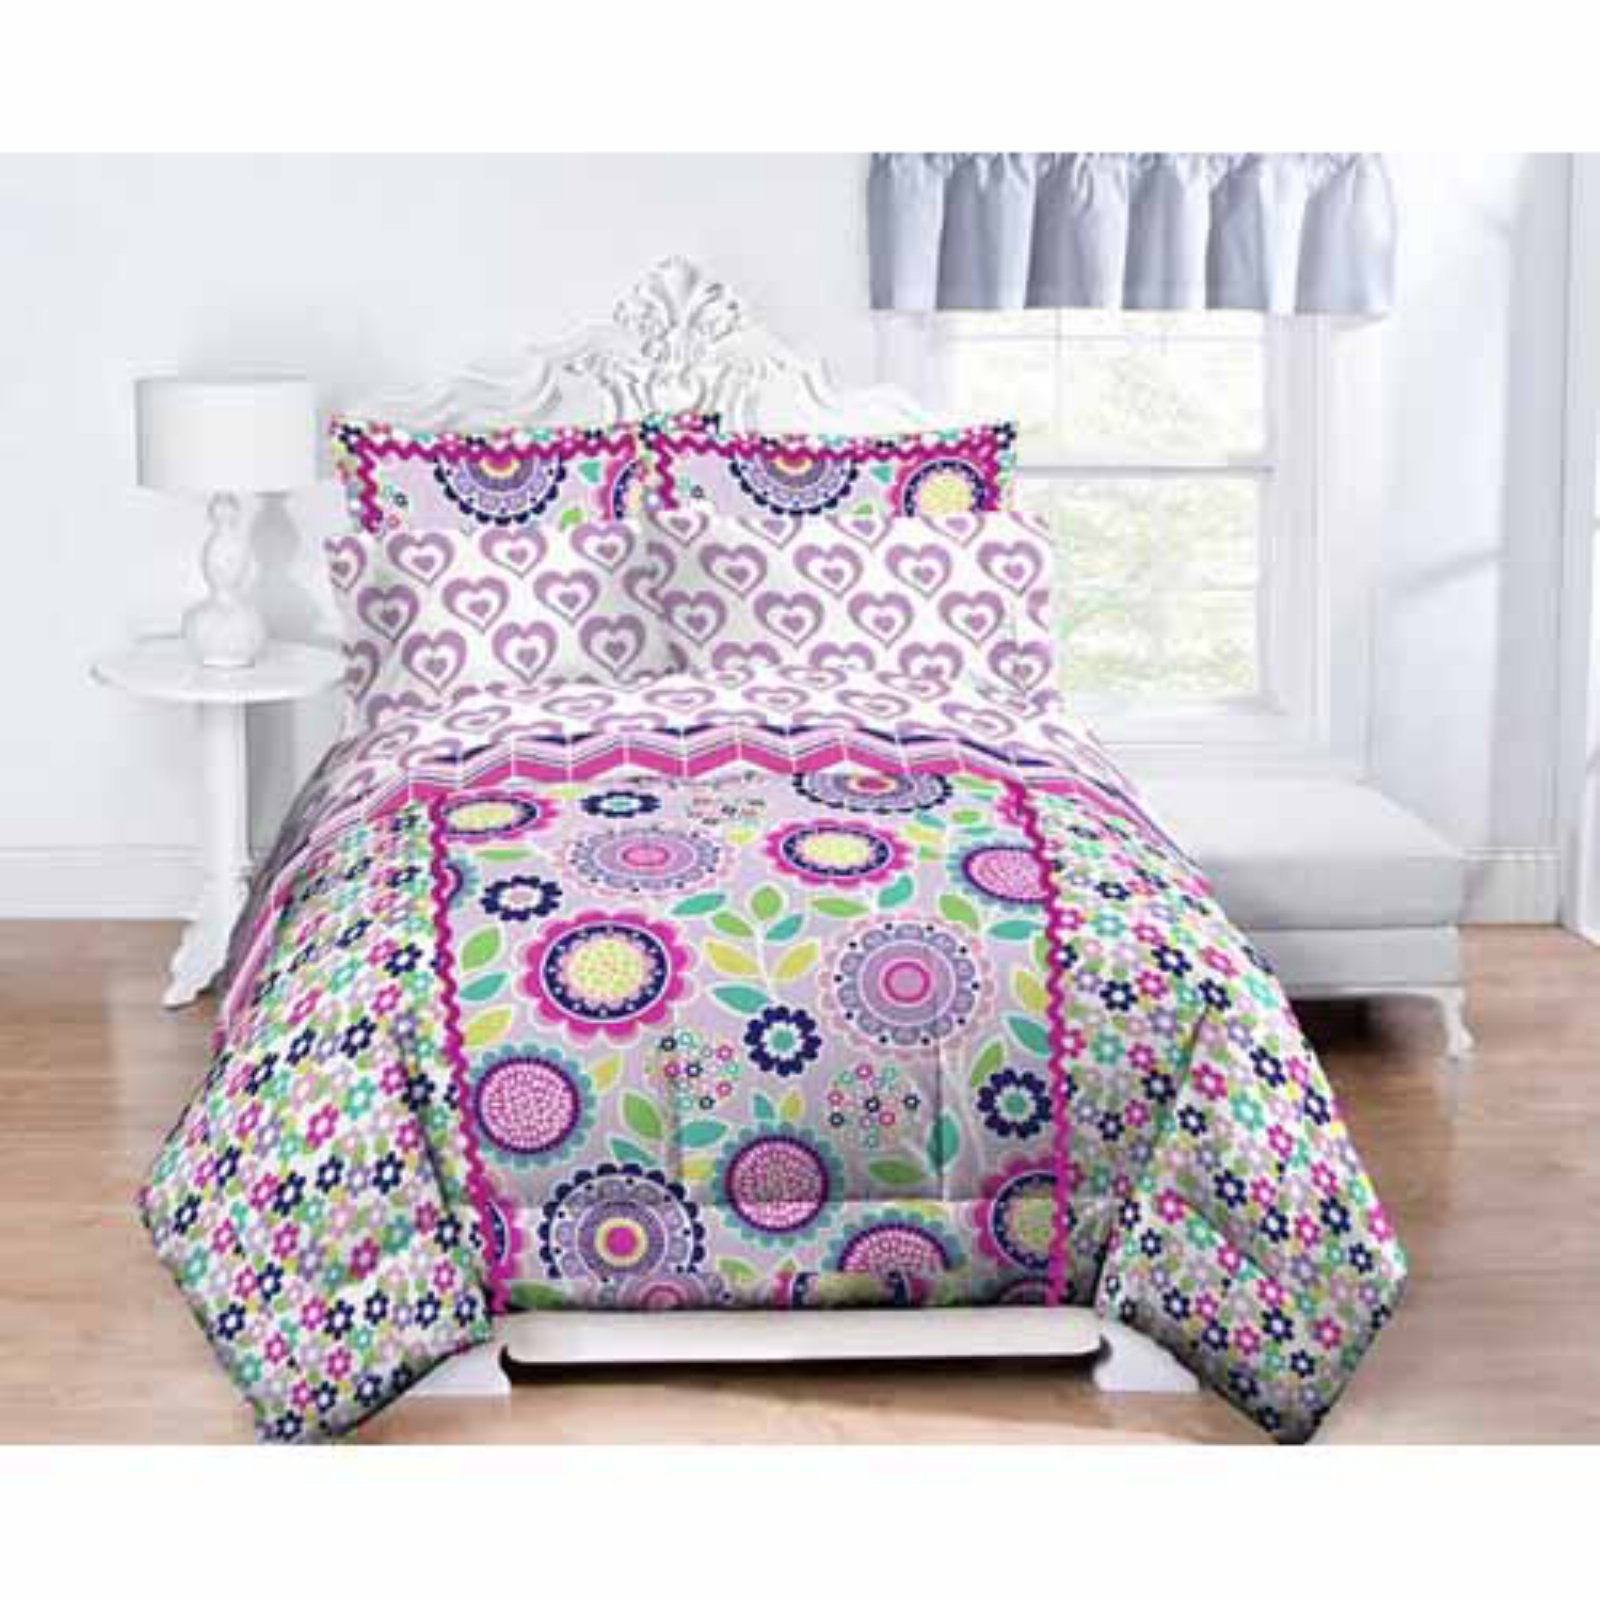 Purple Heart Sheet Set by Just For Kids